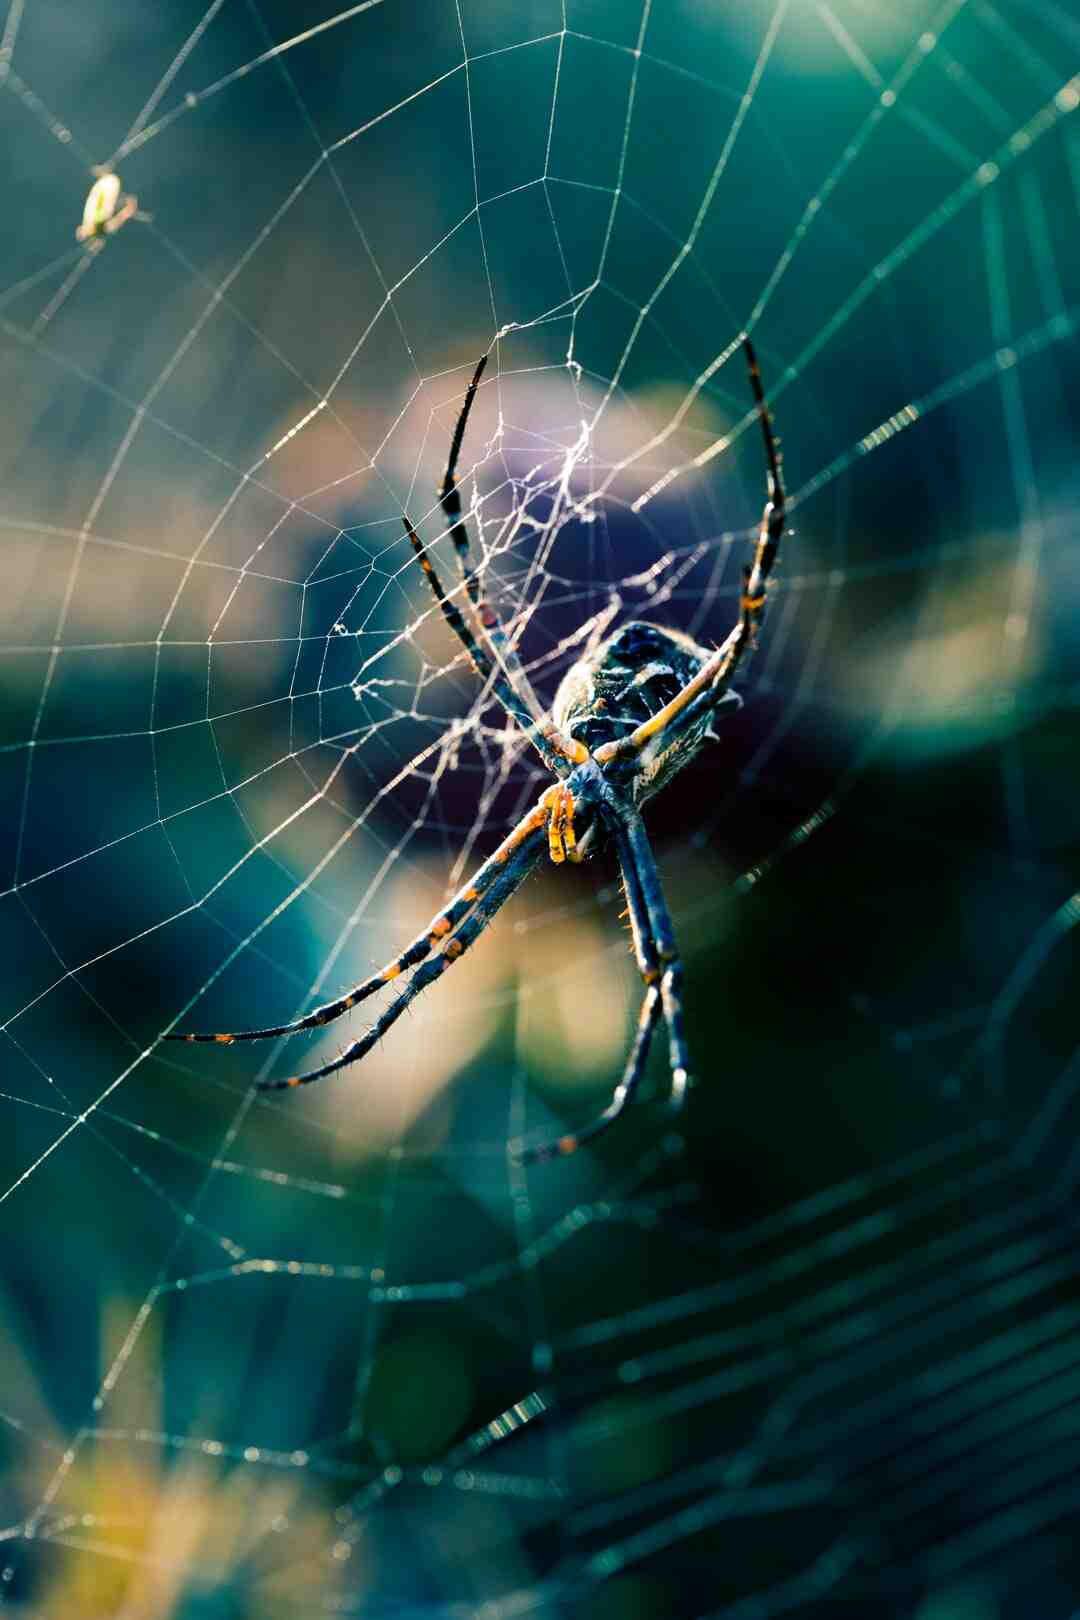 How do I find out where spiders are coming from?